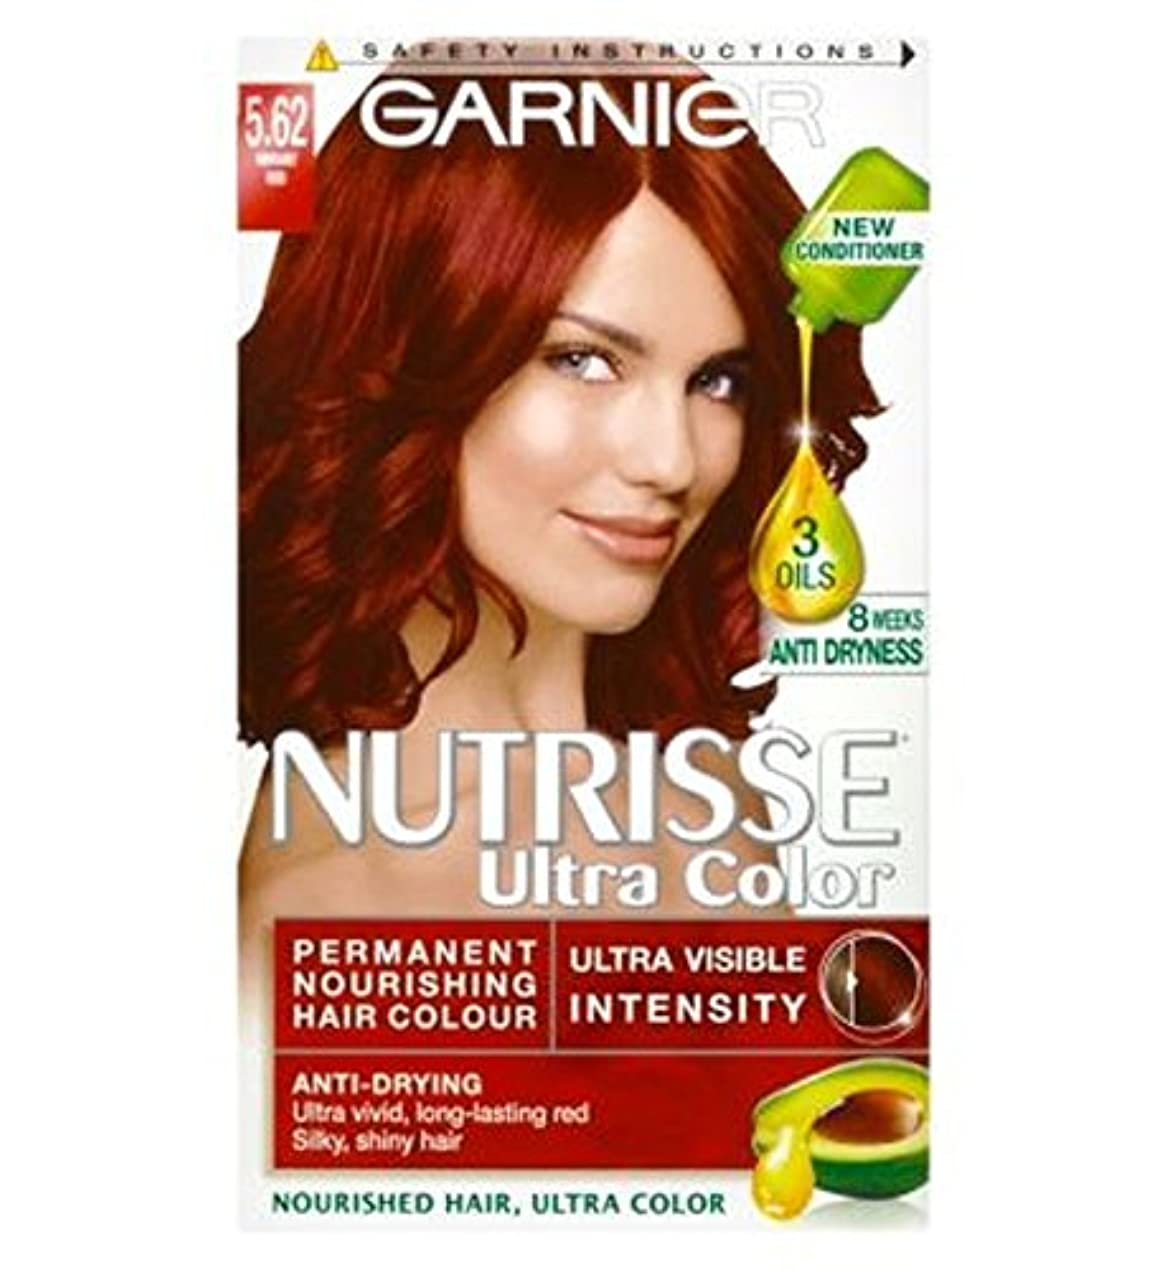 四フェッチと闘うガルニエNutrisse超永久色5.62活気のある赤 (Garnier) (x2) - Garnier Nutrisse Ultra Permanent Colour 5.62 Vibrant Red (Pack of...